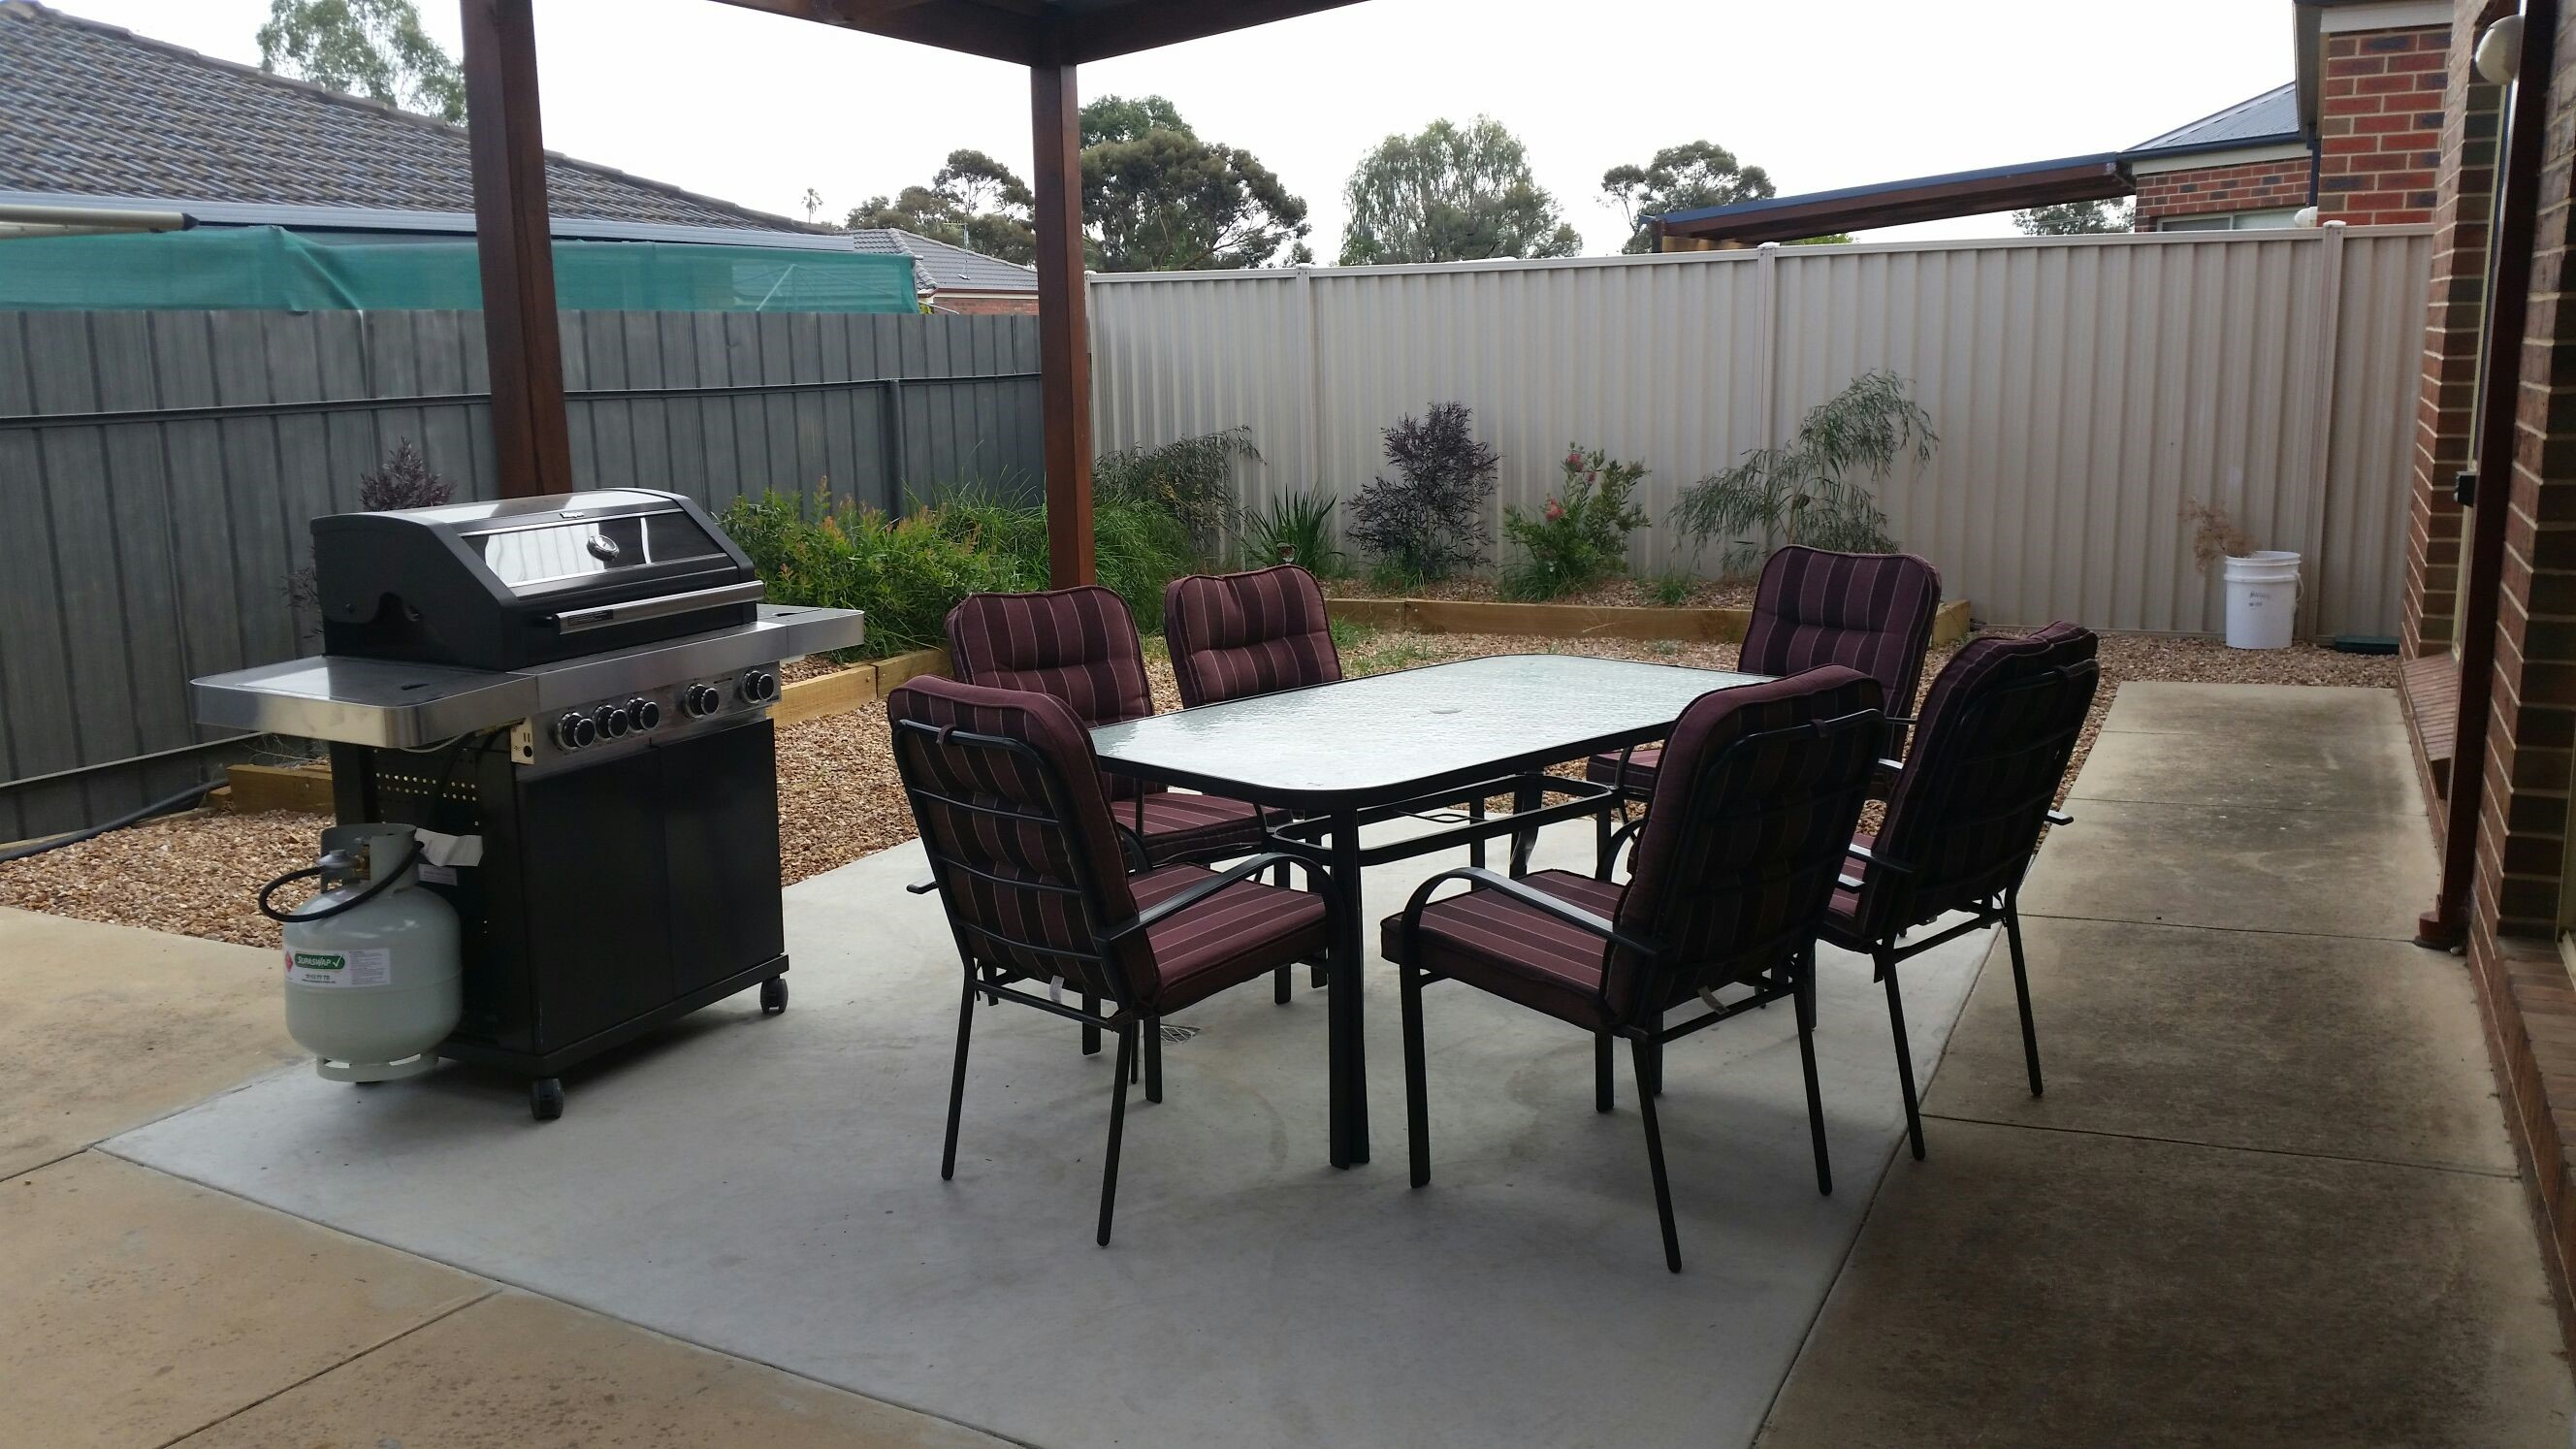 Numurkah Apartments - The Miekleljohn